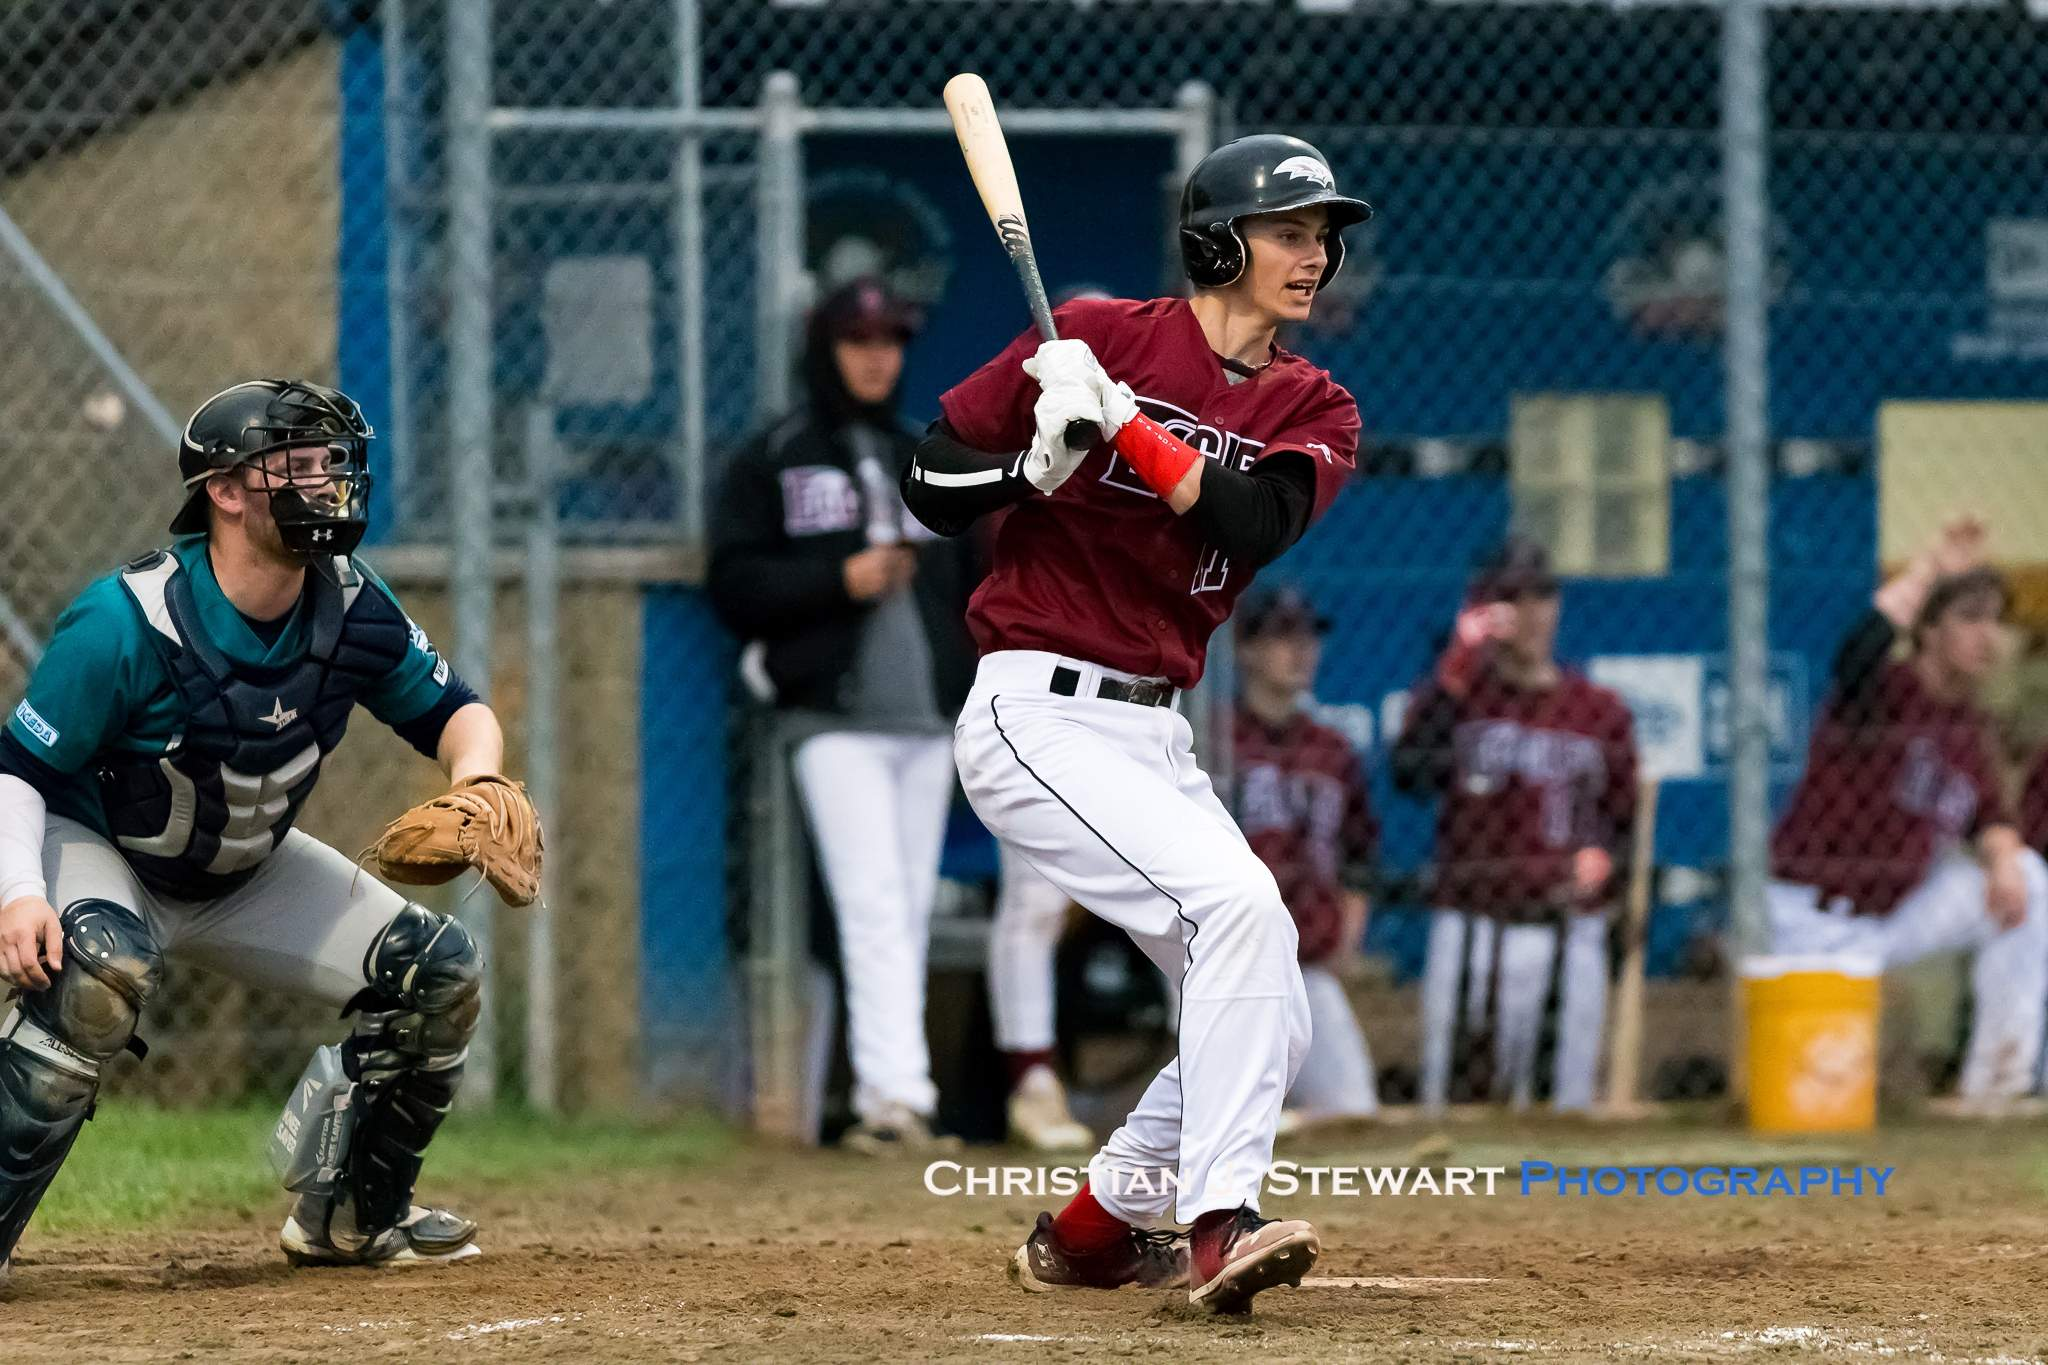 Victoria Eagle Jayden Cull would have a pair of hits, a walk and three runs scored to lead the Ealges offence in their 9-7 win over the Mariners (Photo: Christian J. Stewart)